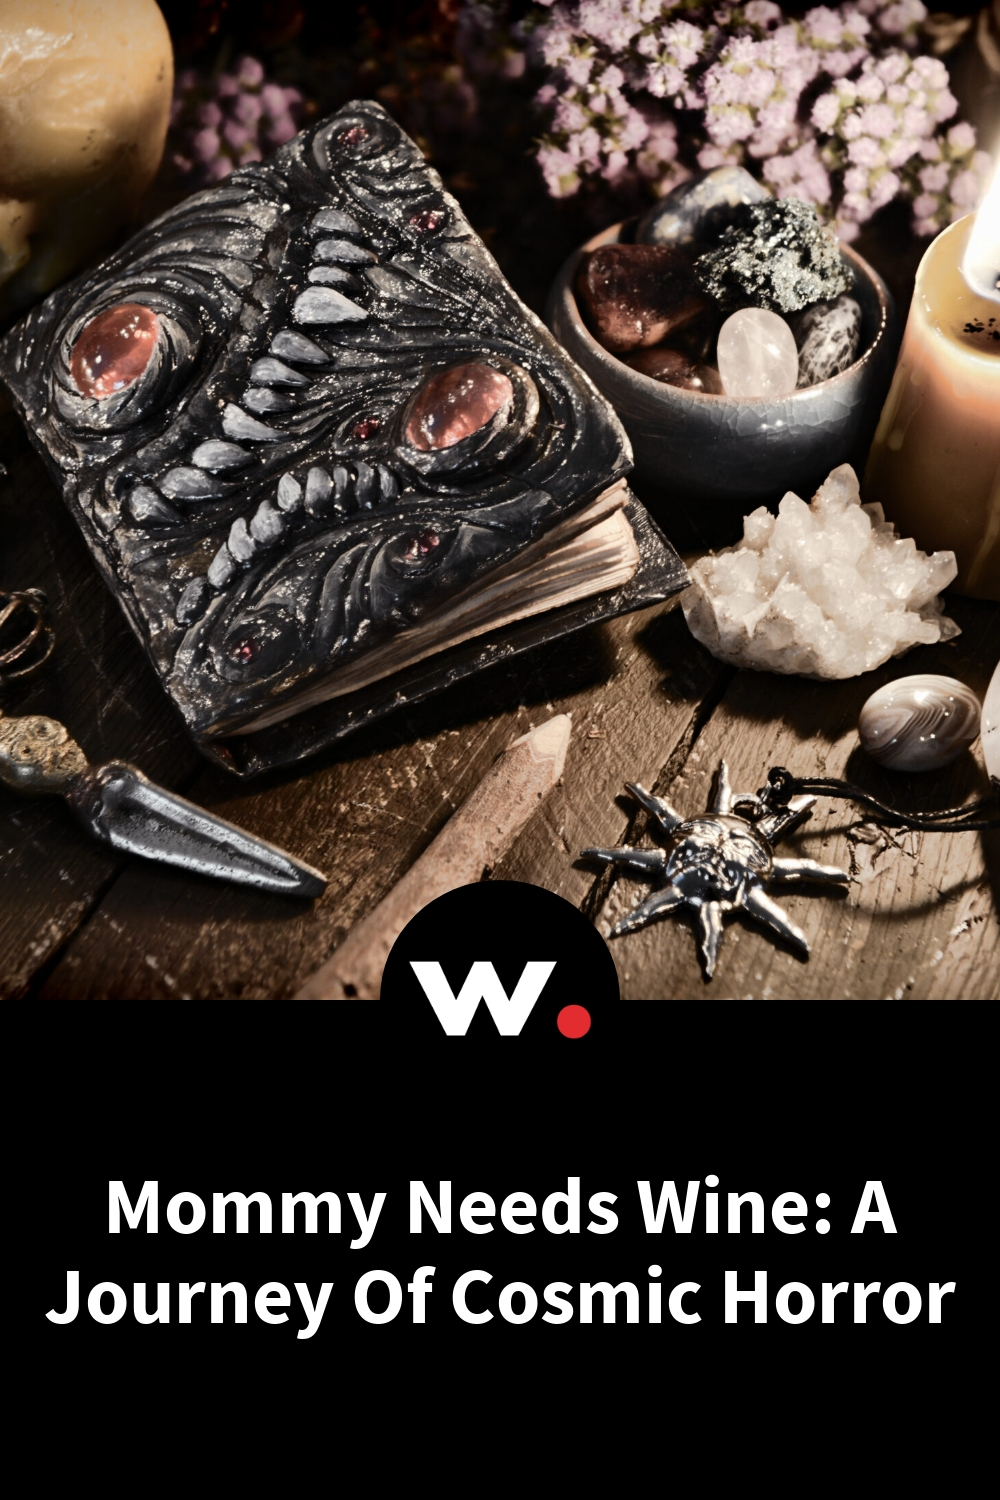 Mommy Needs Wine: A Journey Of Cosmic Horror